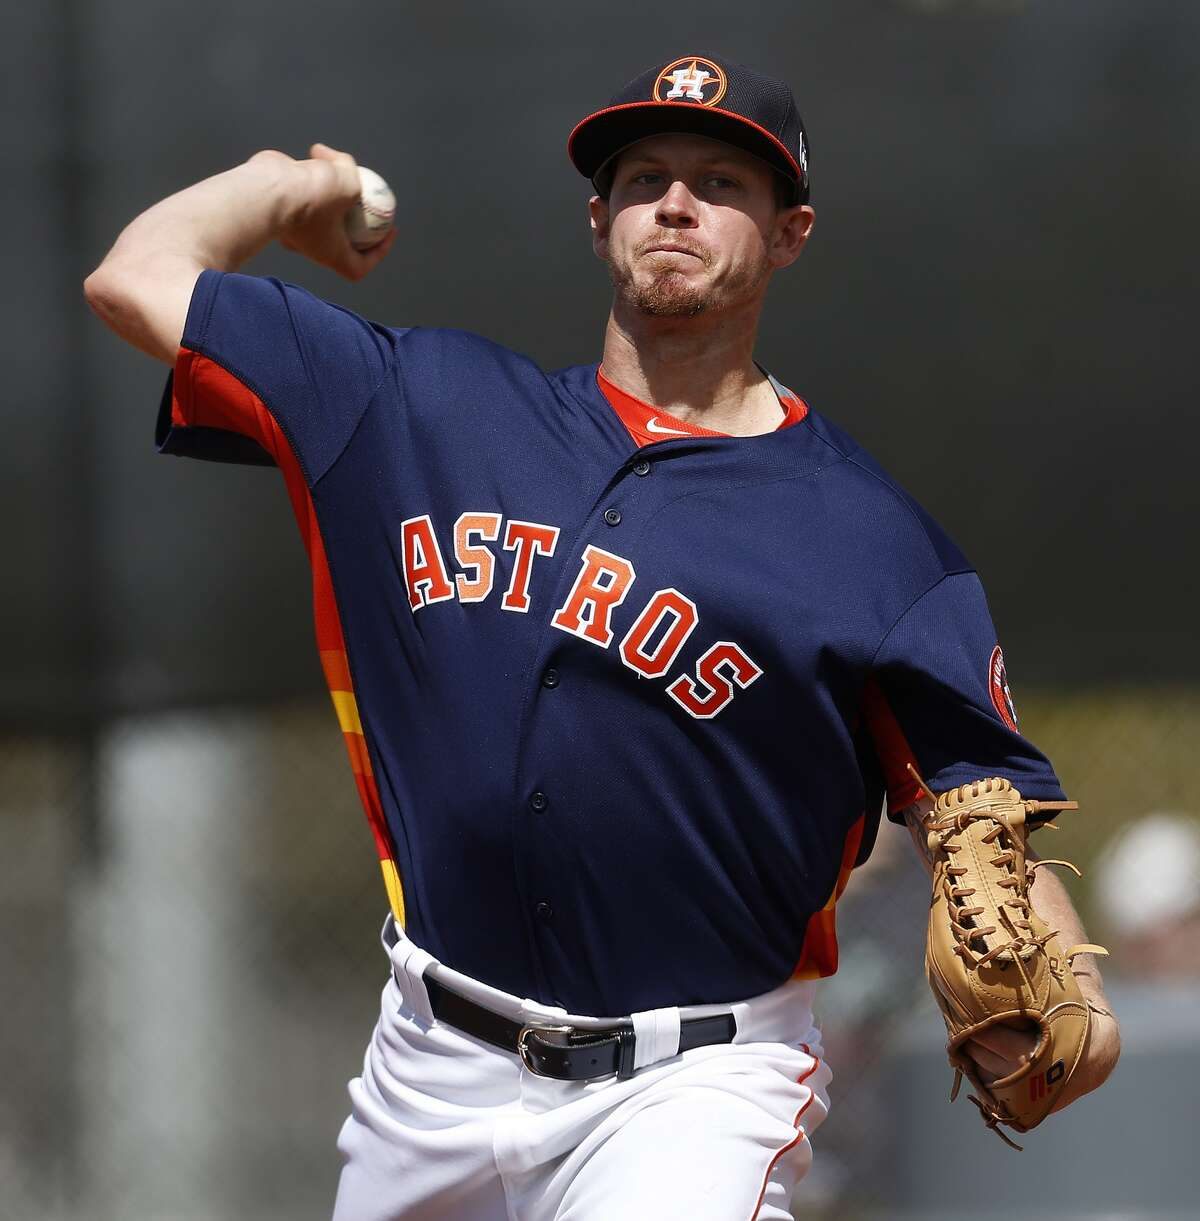 Chris Devenski was the Pitcher of the Year for the Astros' Class AA affiliate in Corpus Christi last season.